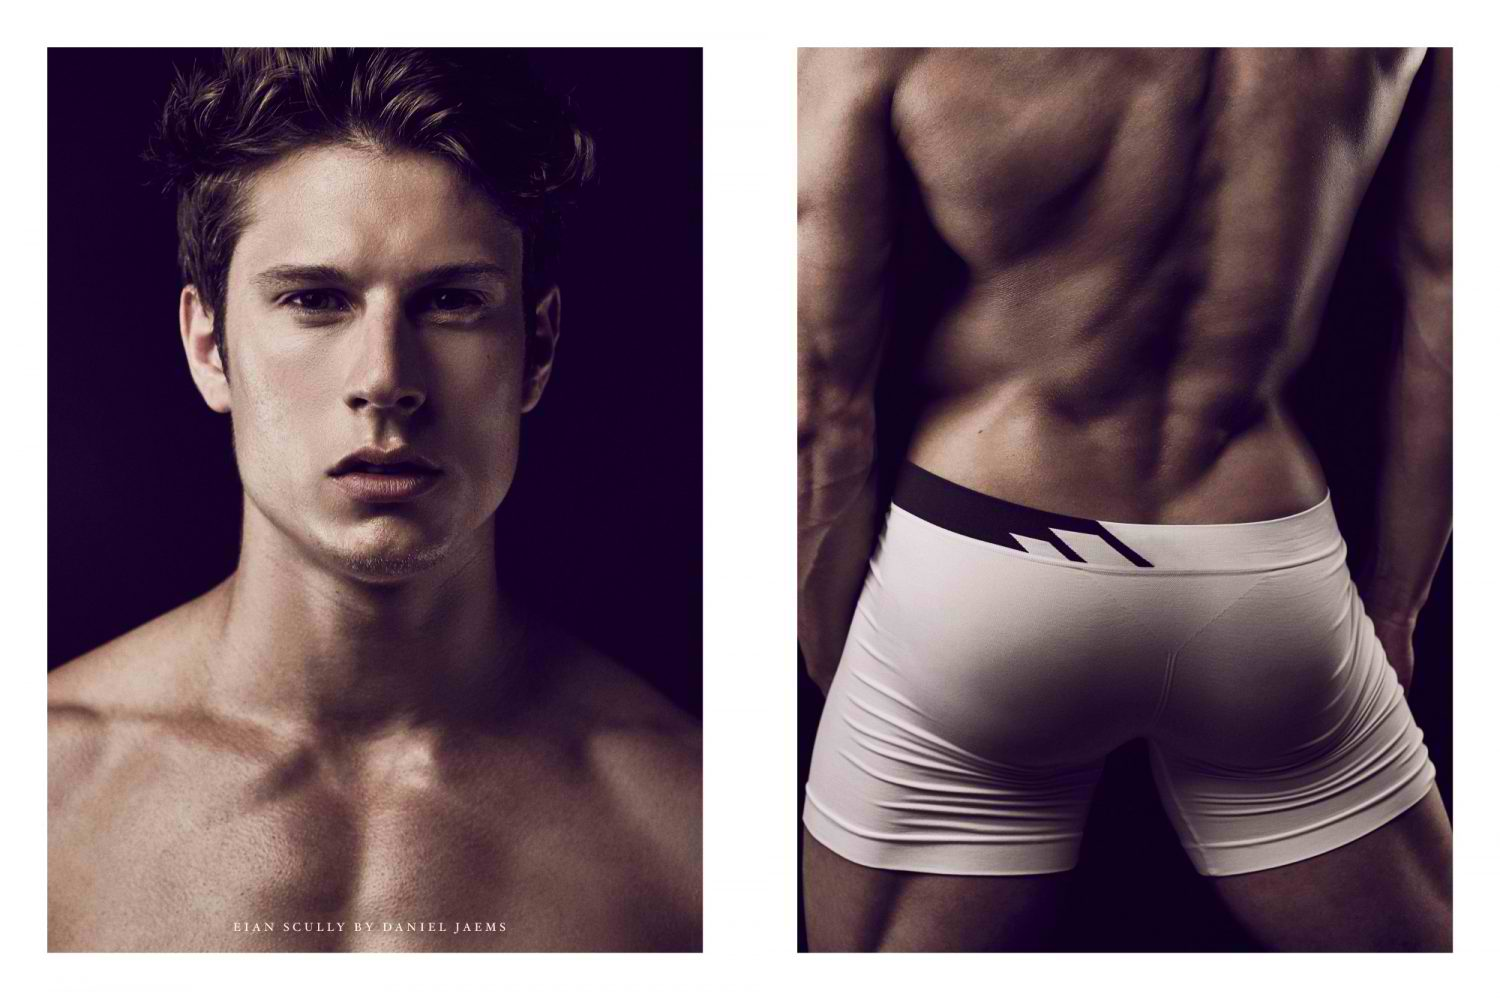 Eian-Scully-by-Daniel-Jaems-Obsession-No17-014-1500x1000 (1)